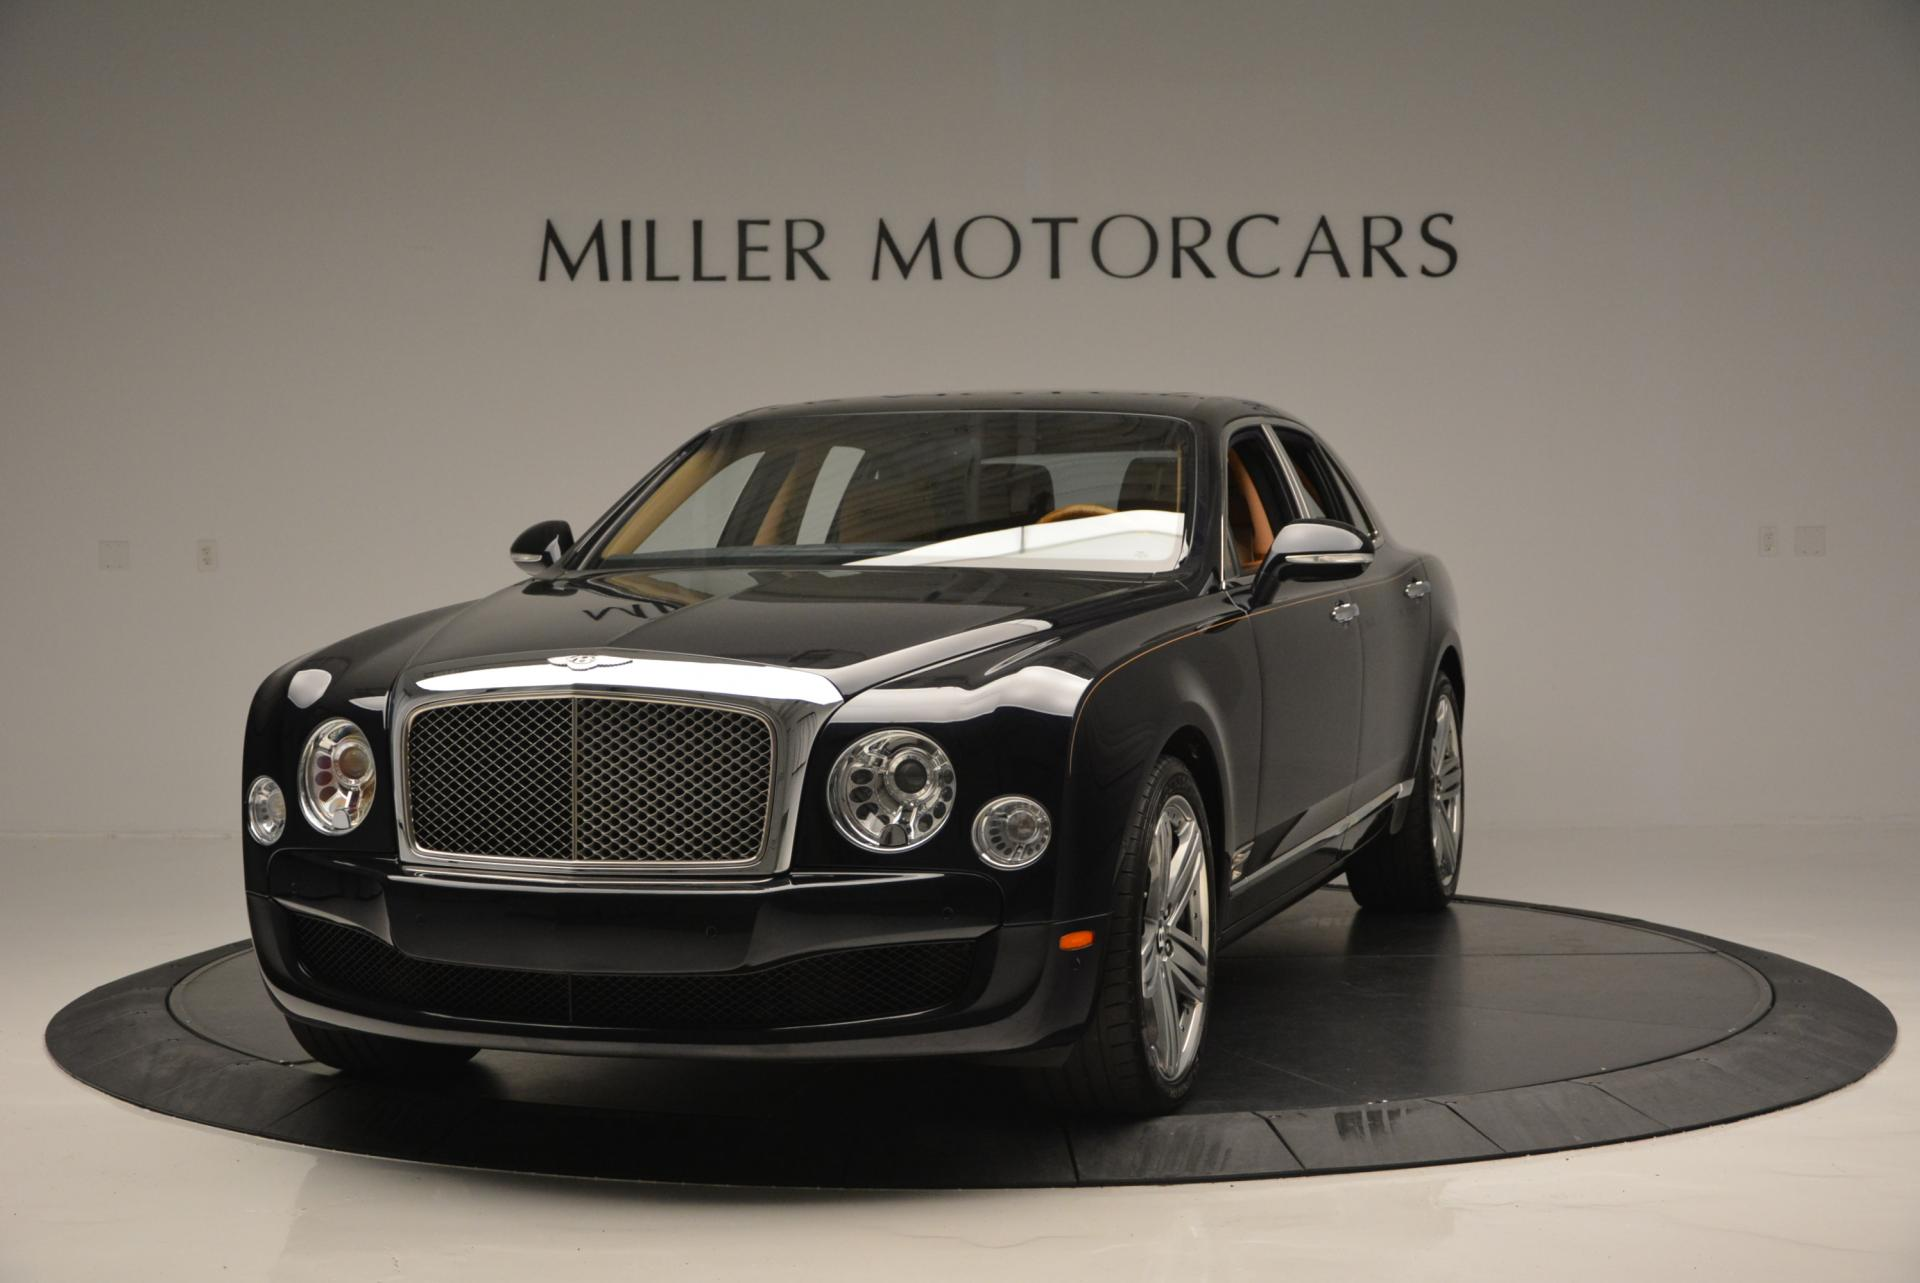 Used 2013 Bentley Mulsanne Le Mans Edition- Number 1 of 48 for sale Sold at Bentley Greenwich in Greenwich CT 06830 1